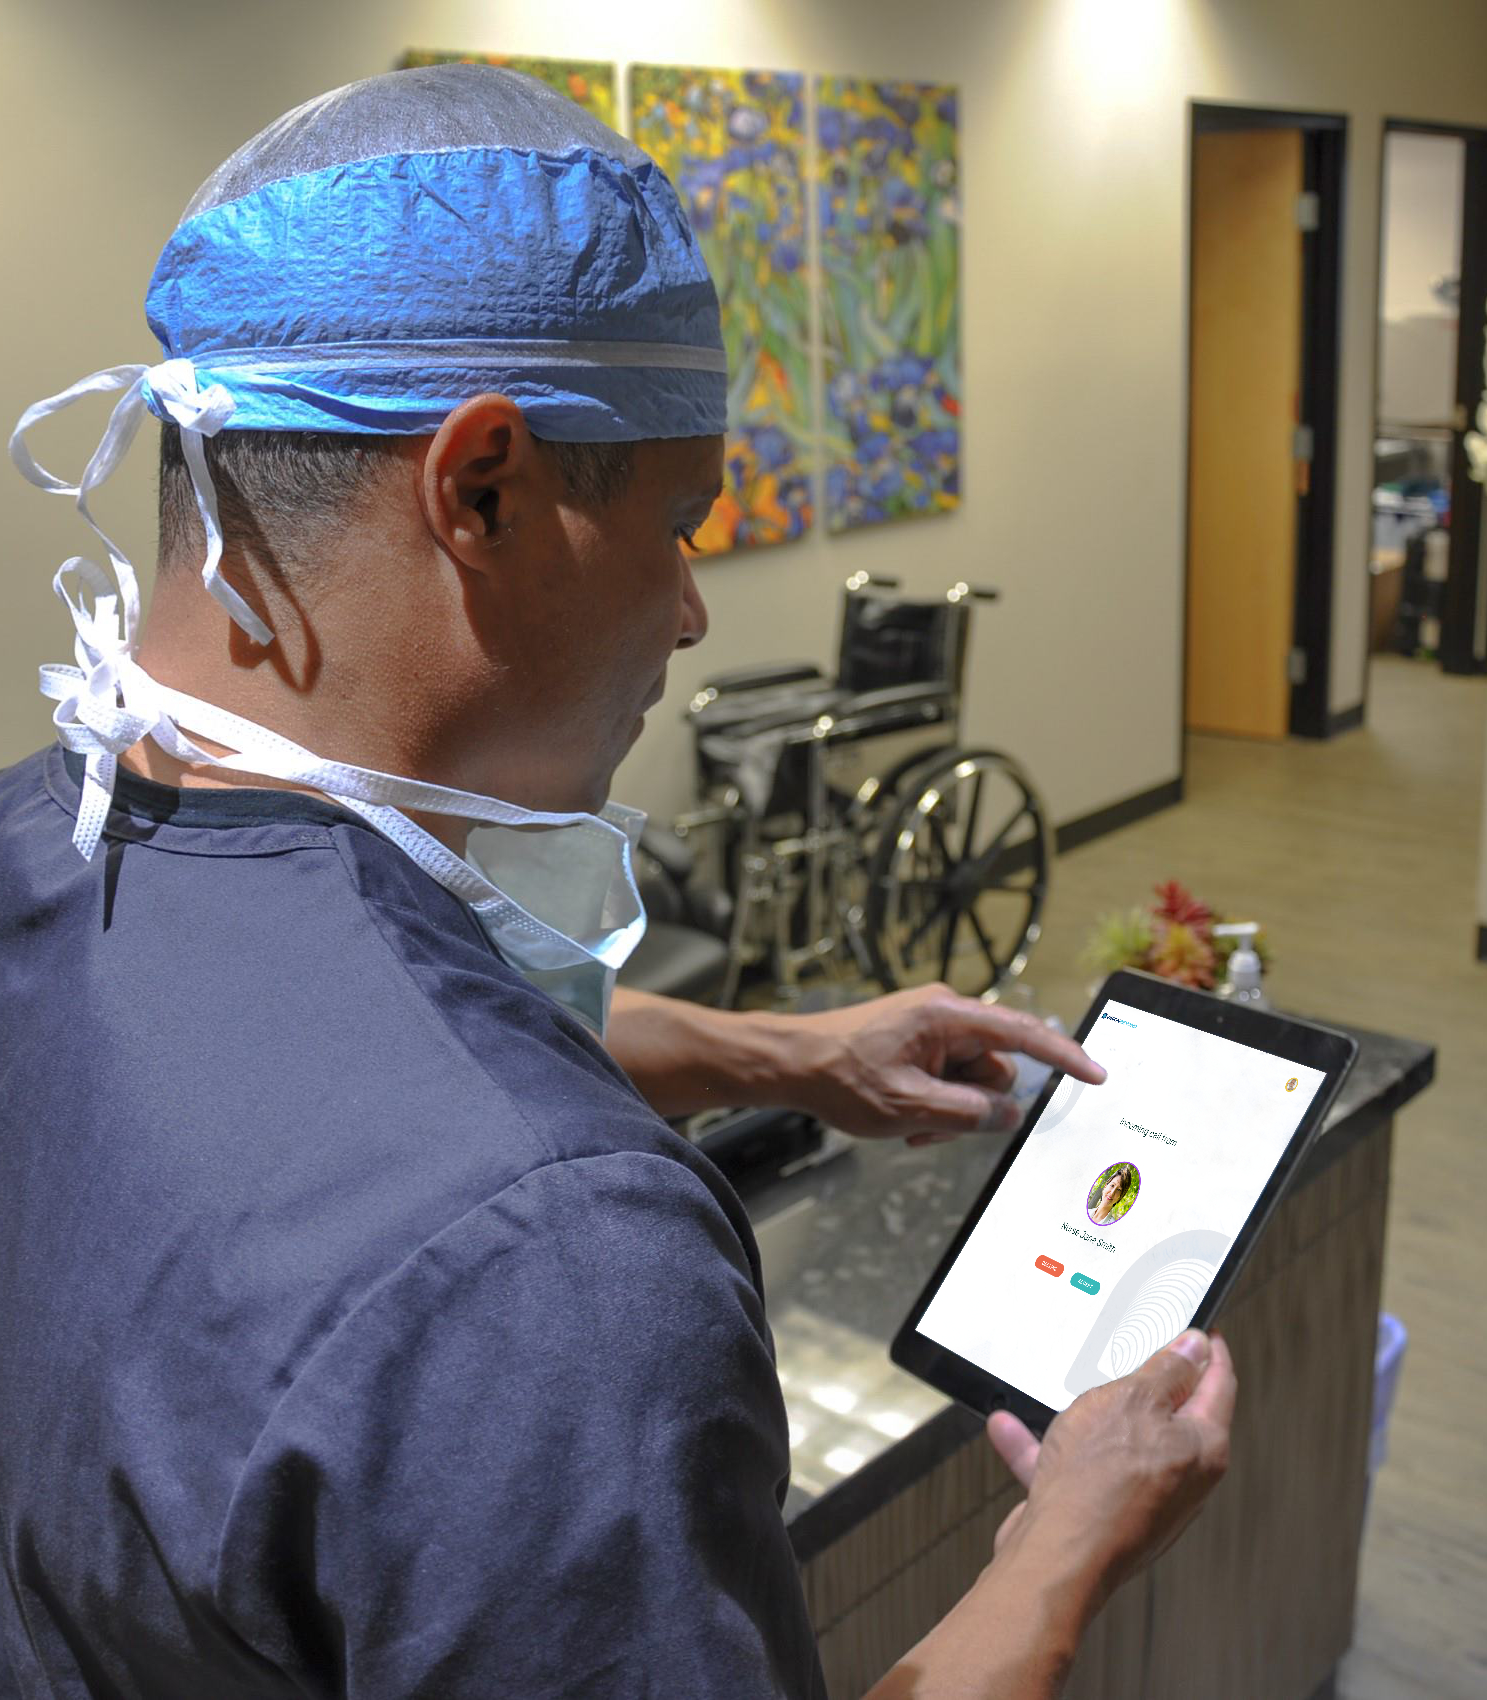 clinician using software on their tablet